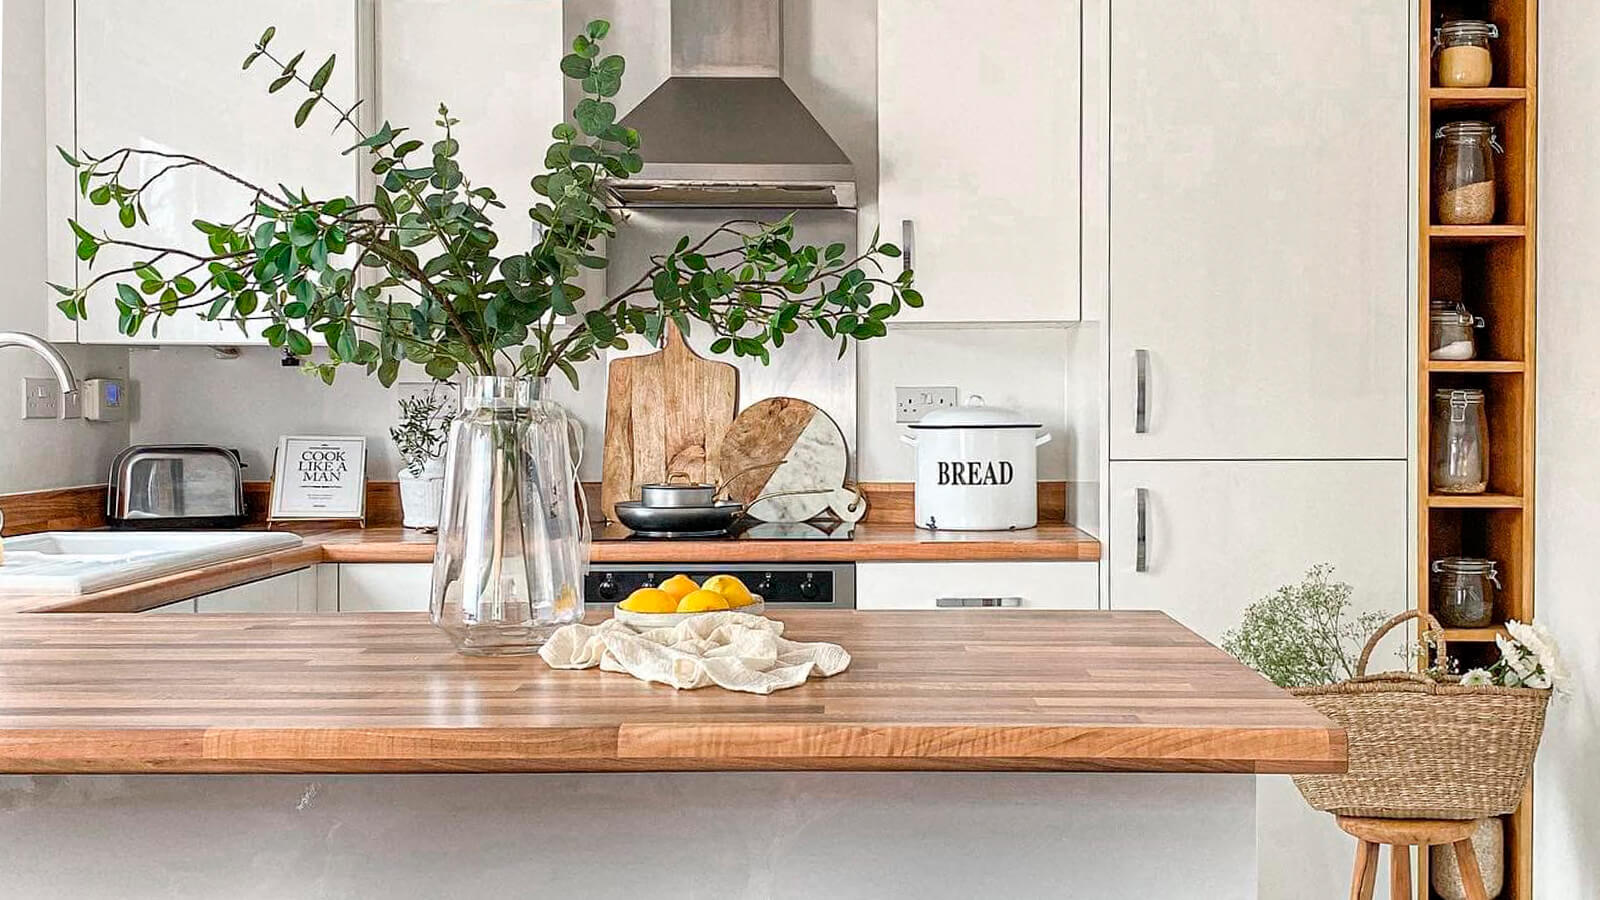 A guide to shabby chic kitchen décor